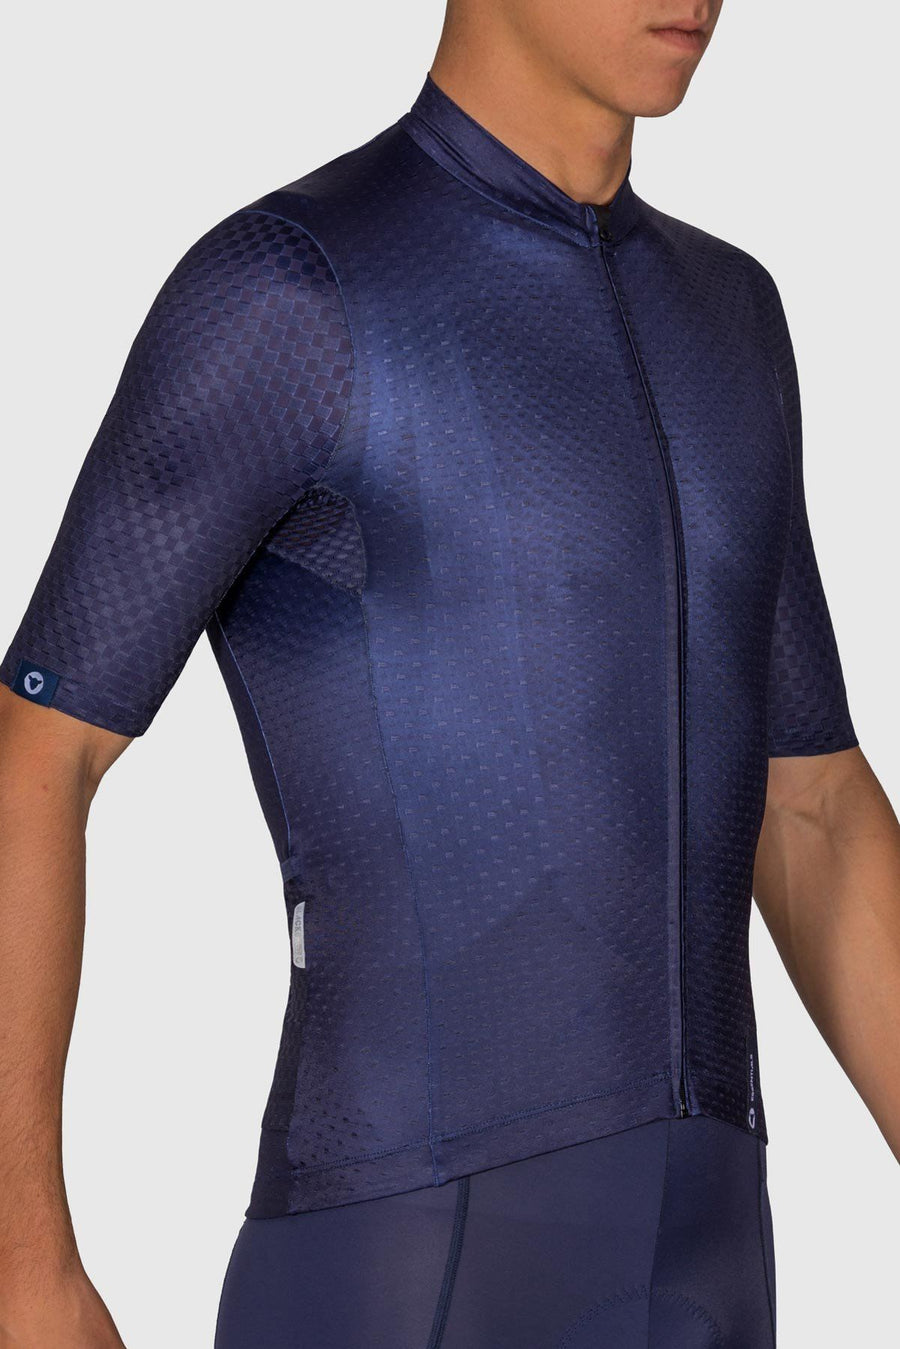 Euro Collection Men's Navy Jersey